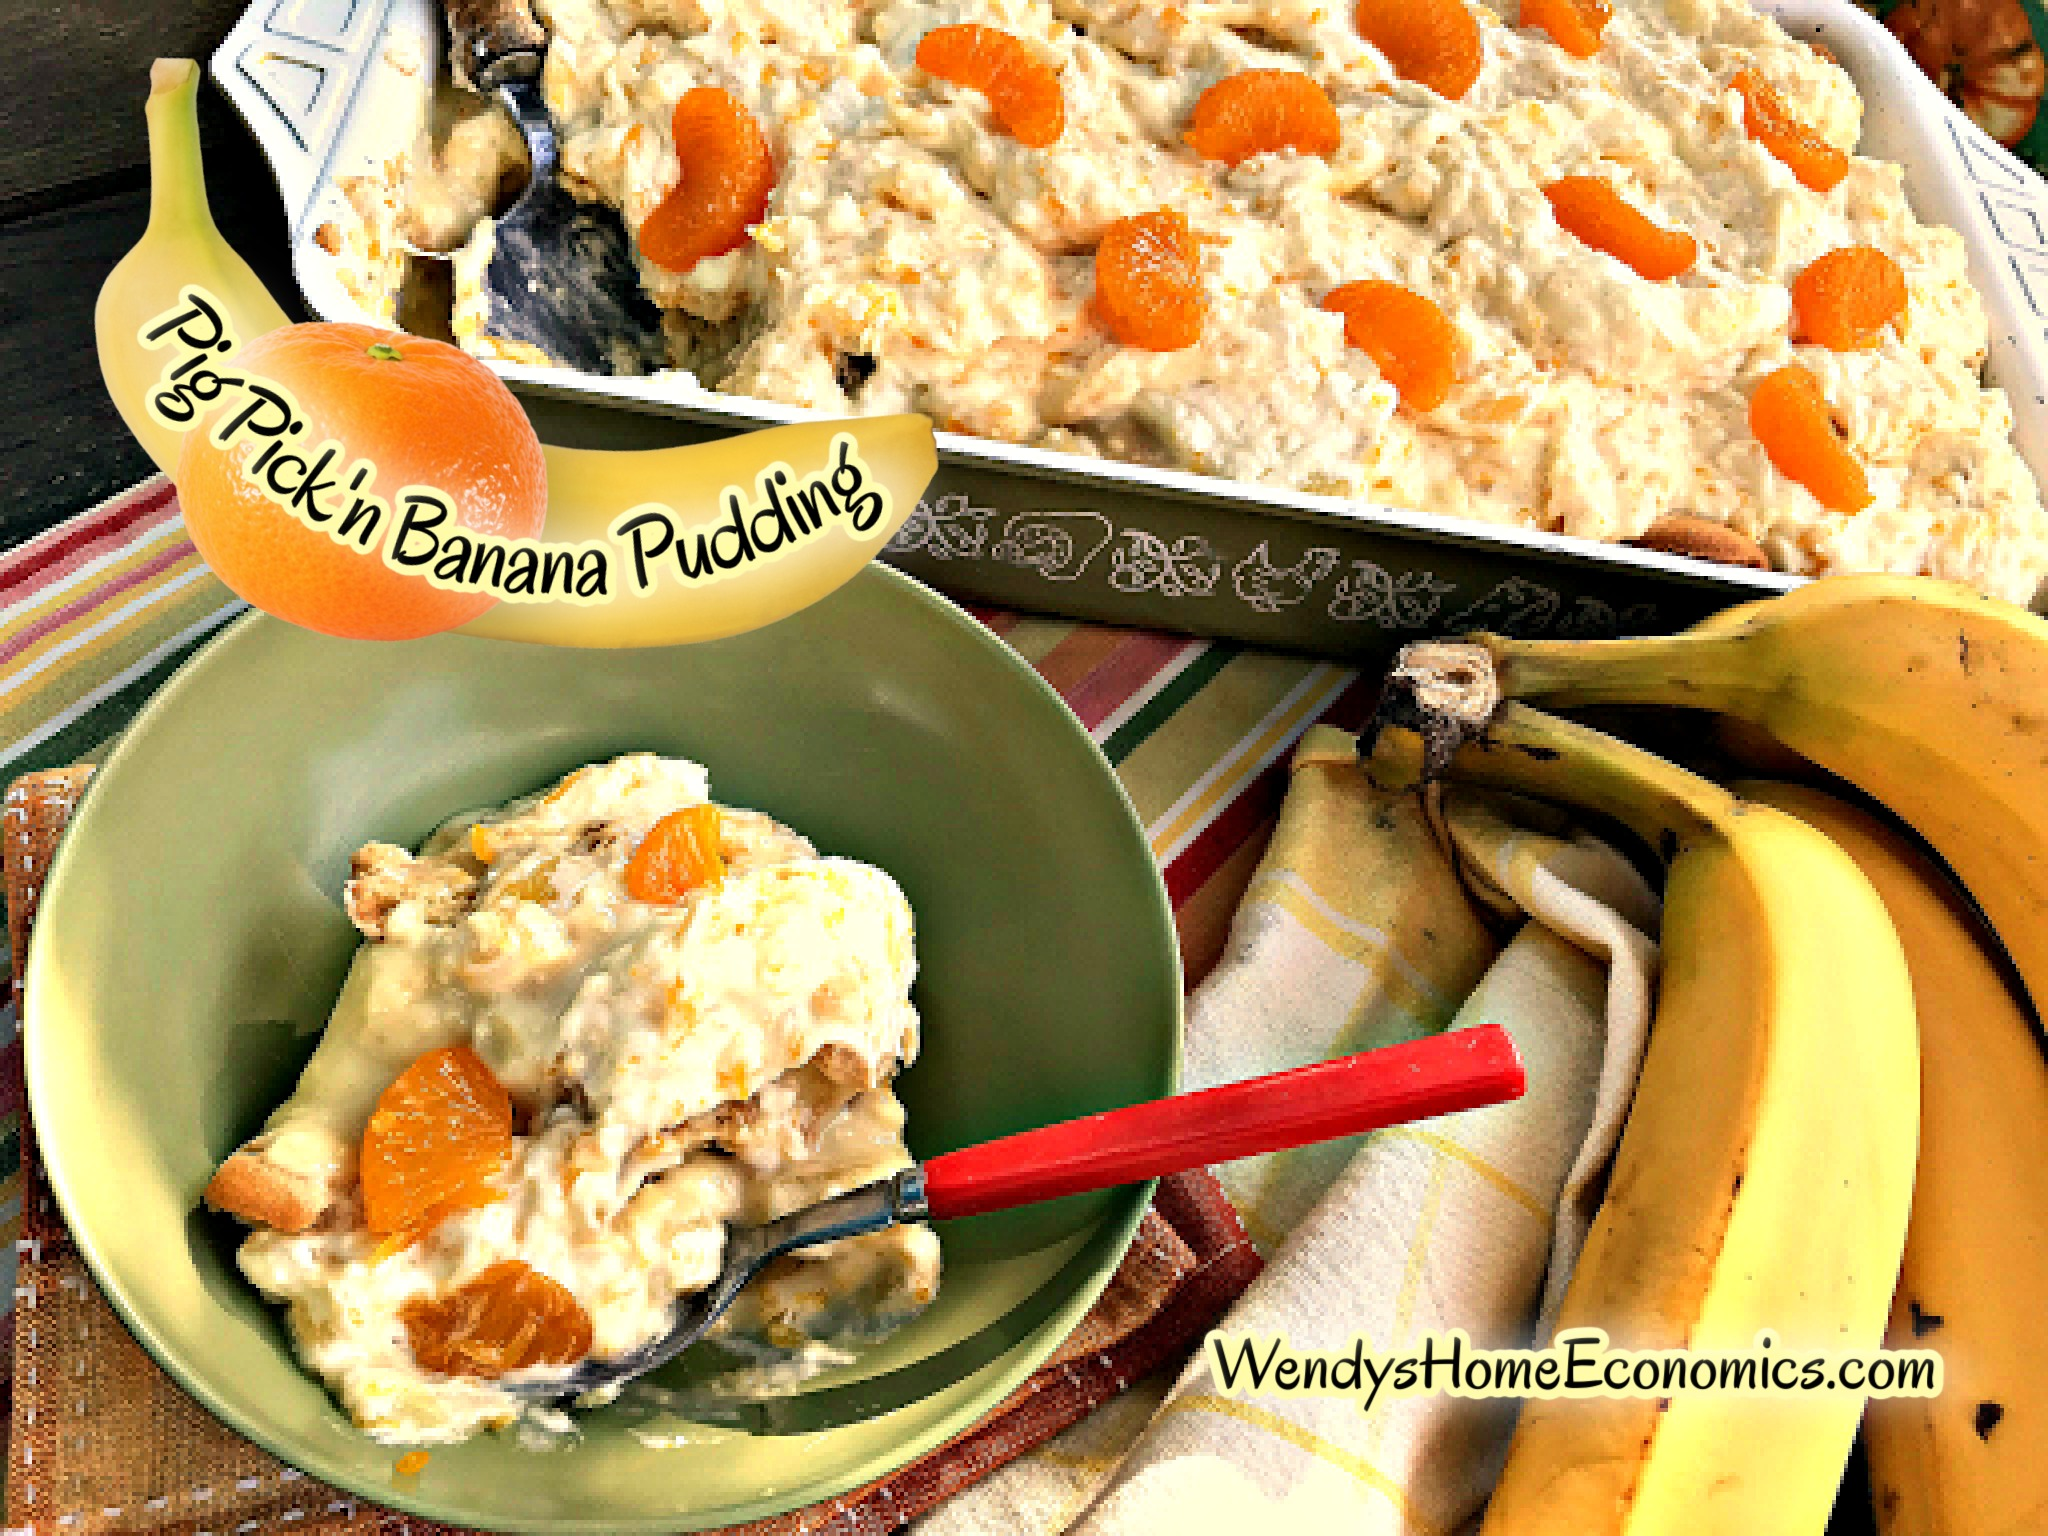 Pig Pick'n Banana Pudding